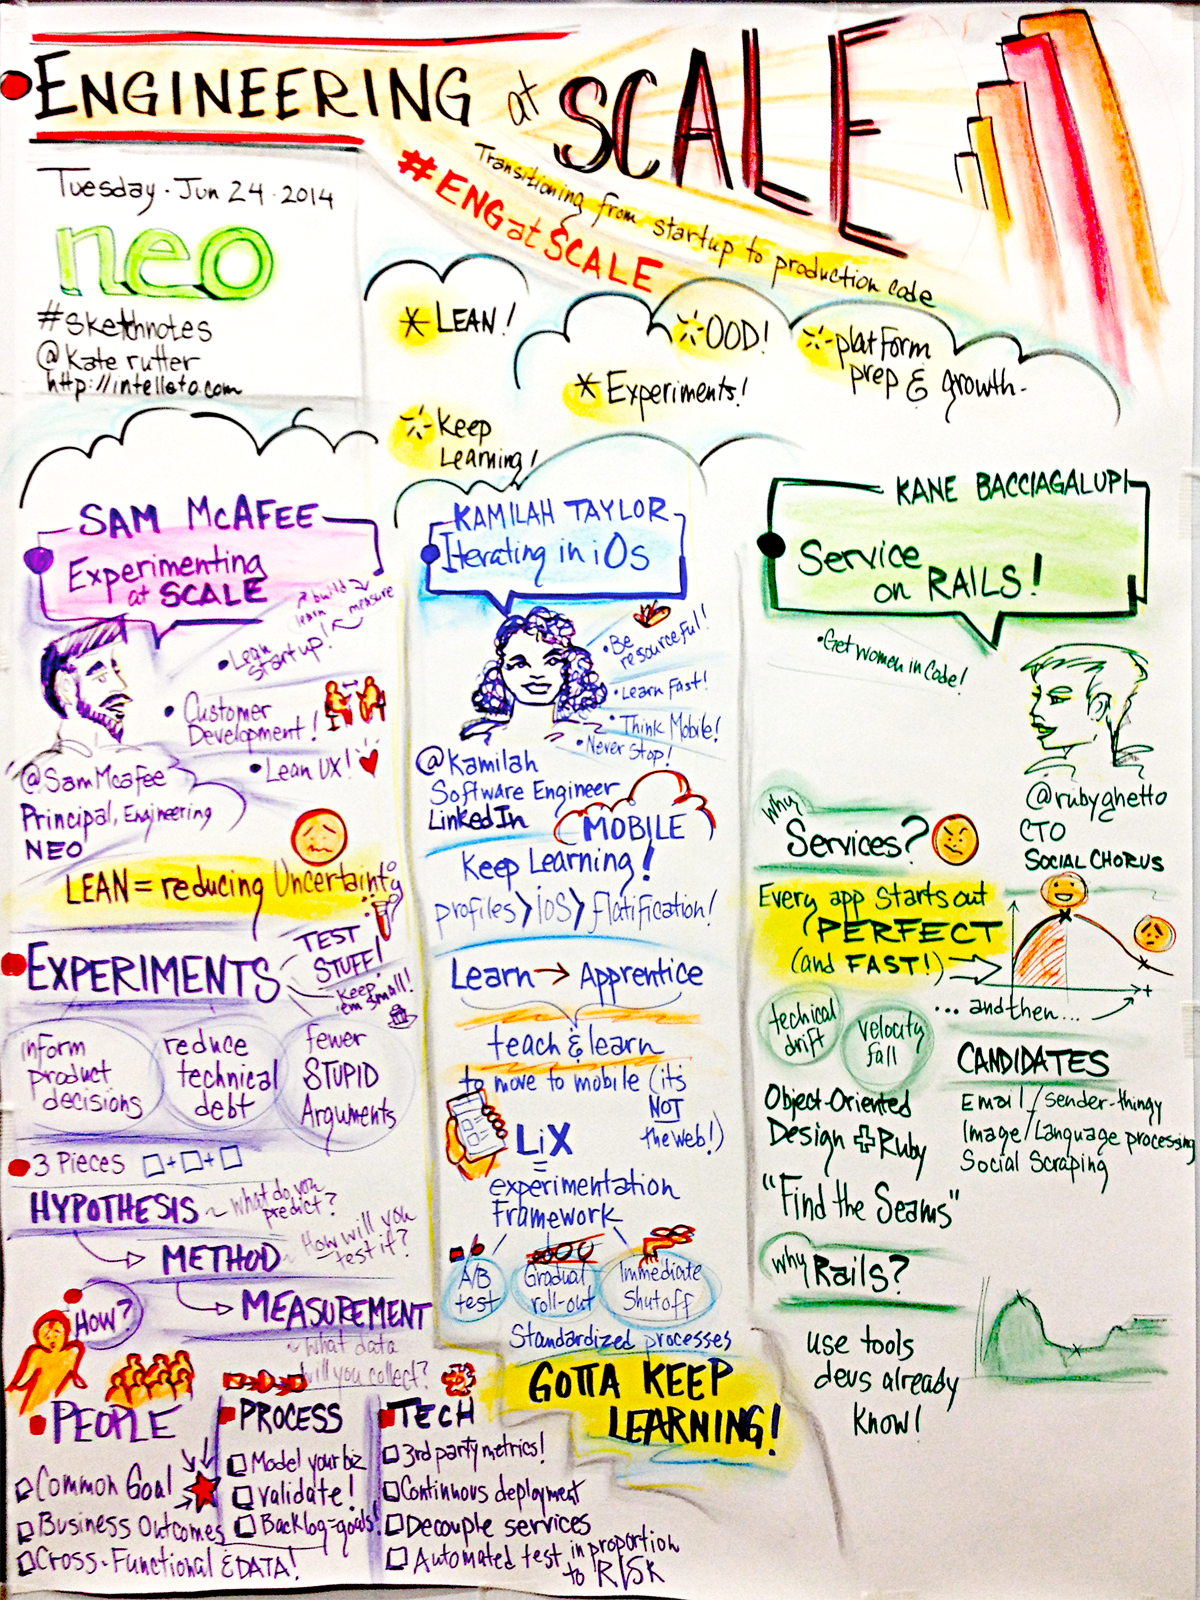 Engineering at scale: Iterating in iOS. Sketchnote by  Kate Rutter